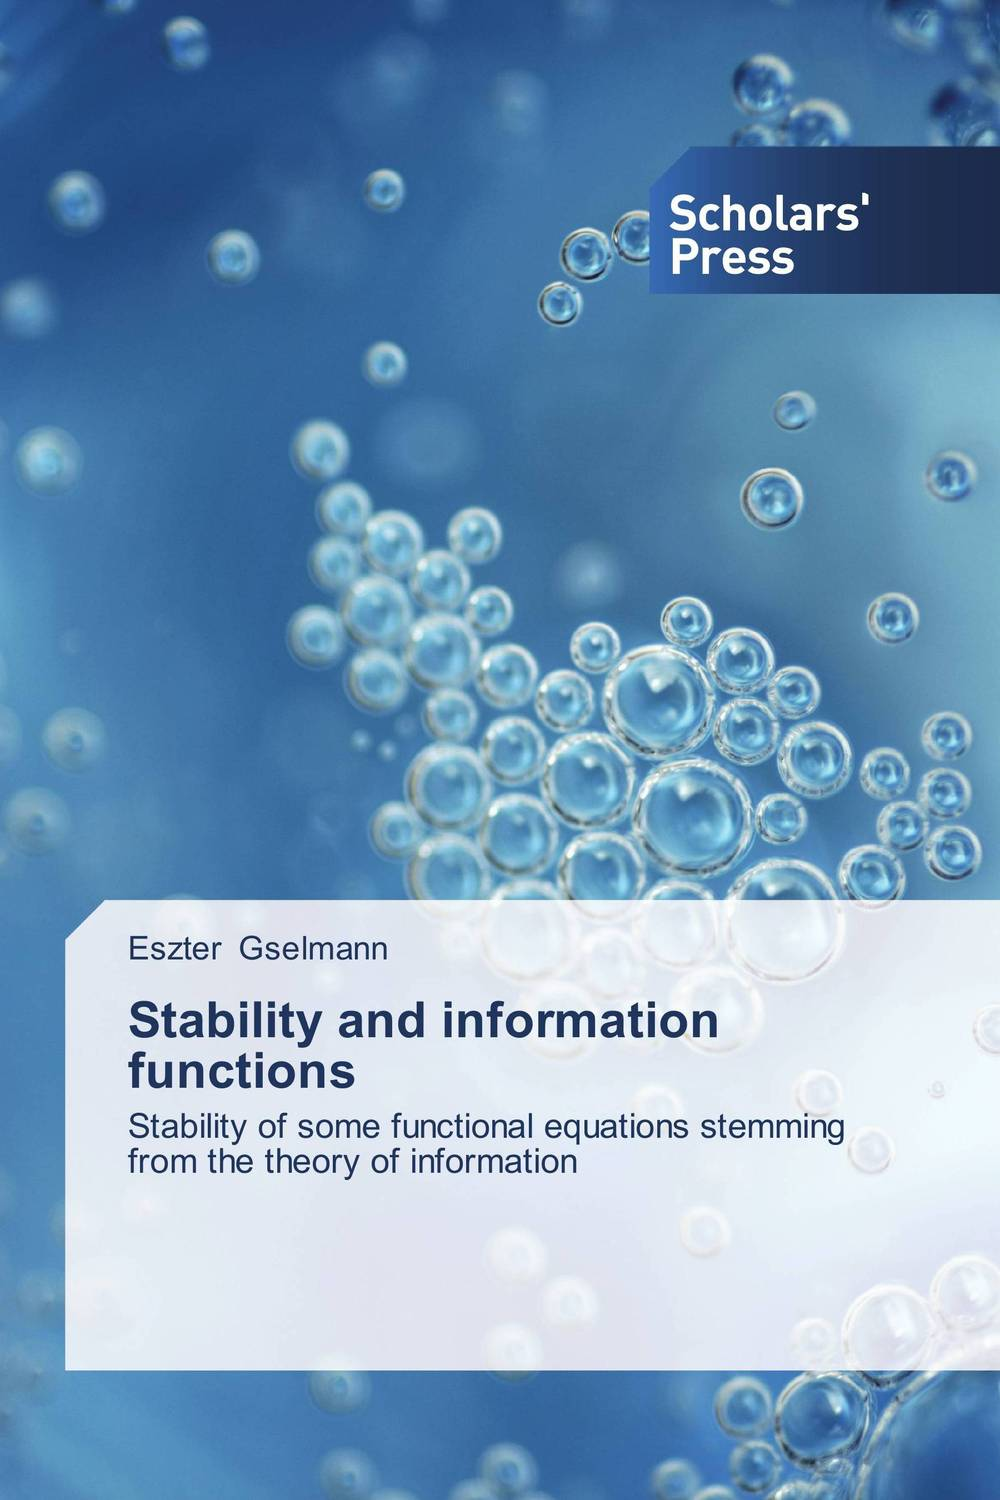 Stability and information functions basic information theory thermo limits for network structures